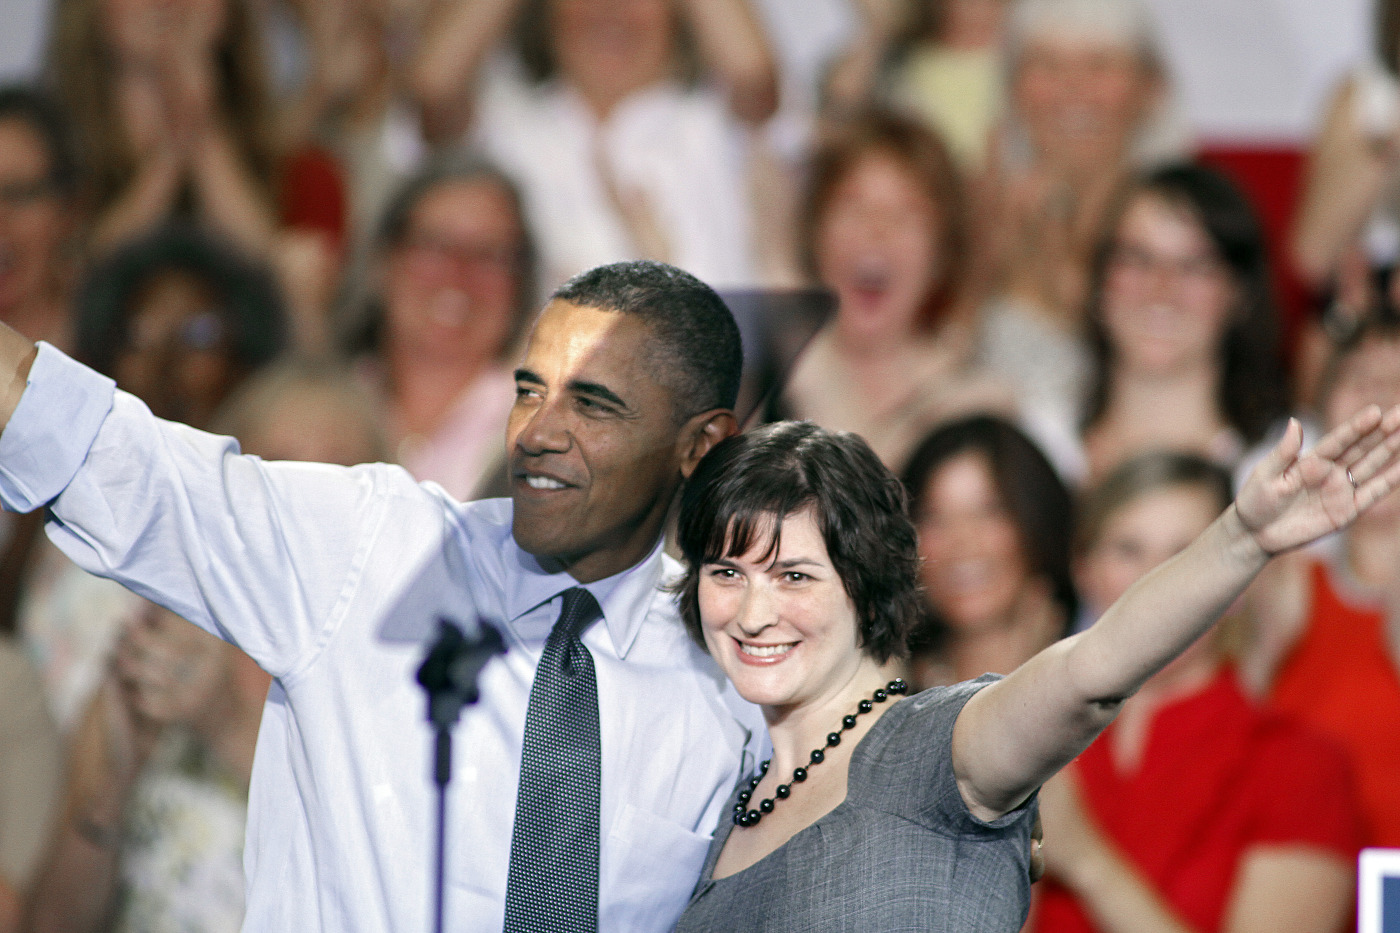 USA TODAY: Women's rights activist Sandra Fluke heads to Calif. general election